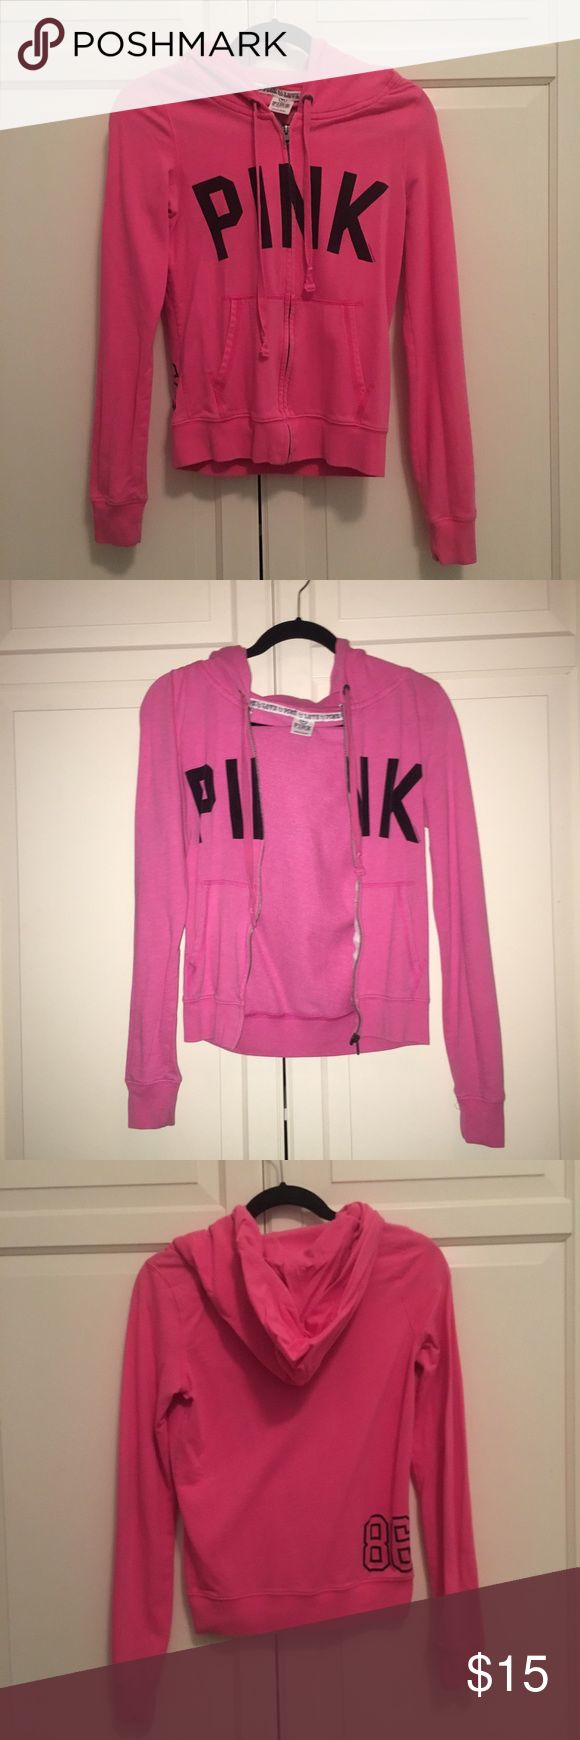 PINK Victoria's Secret pink zip up hoodie!💕 Used PINK hoodie. Slight stain on back of one sleeve. Got too small for me! Still a great sweatshirt super stylish price negotiable --I ship fast 😊 100% authentic PINK Victoria's Secret Tops Sweatshirts & Hoodies